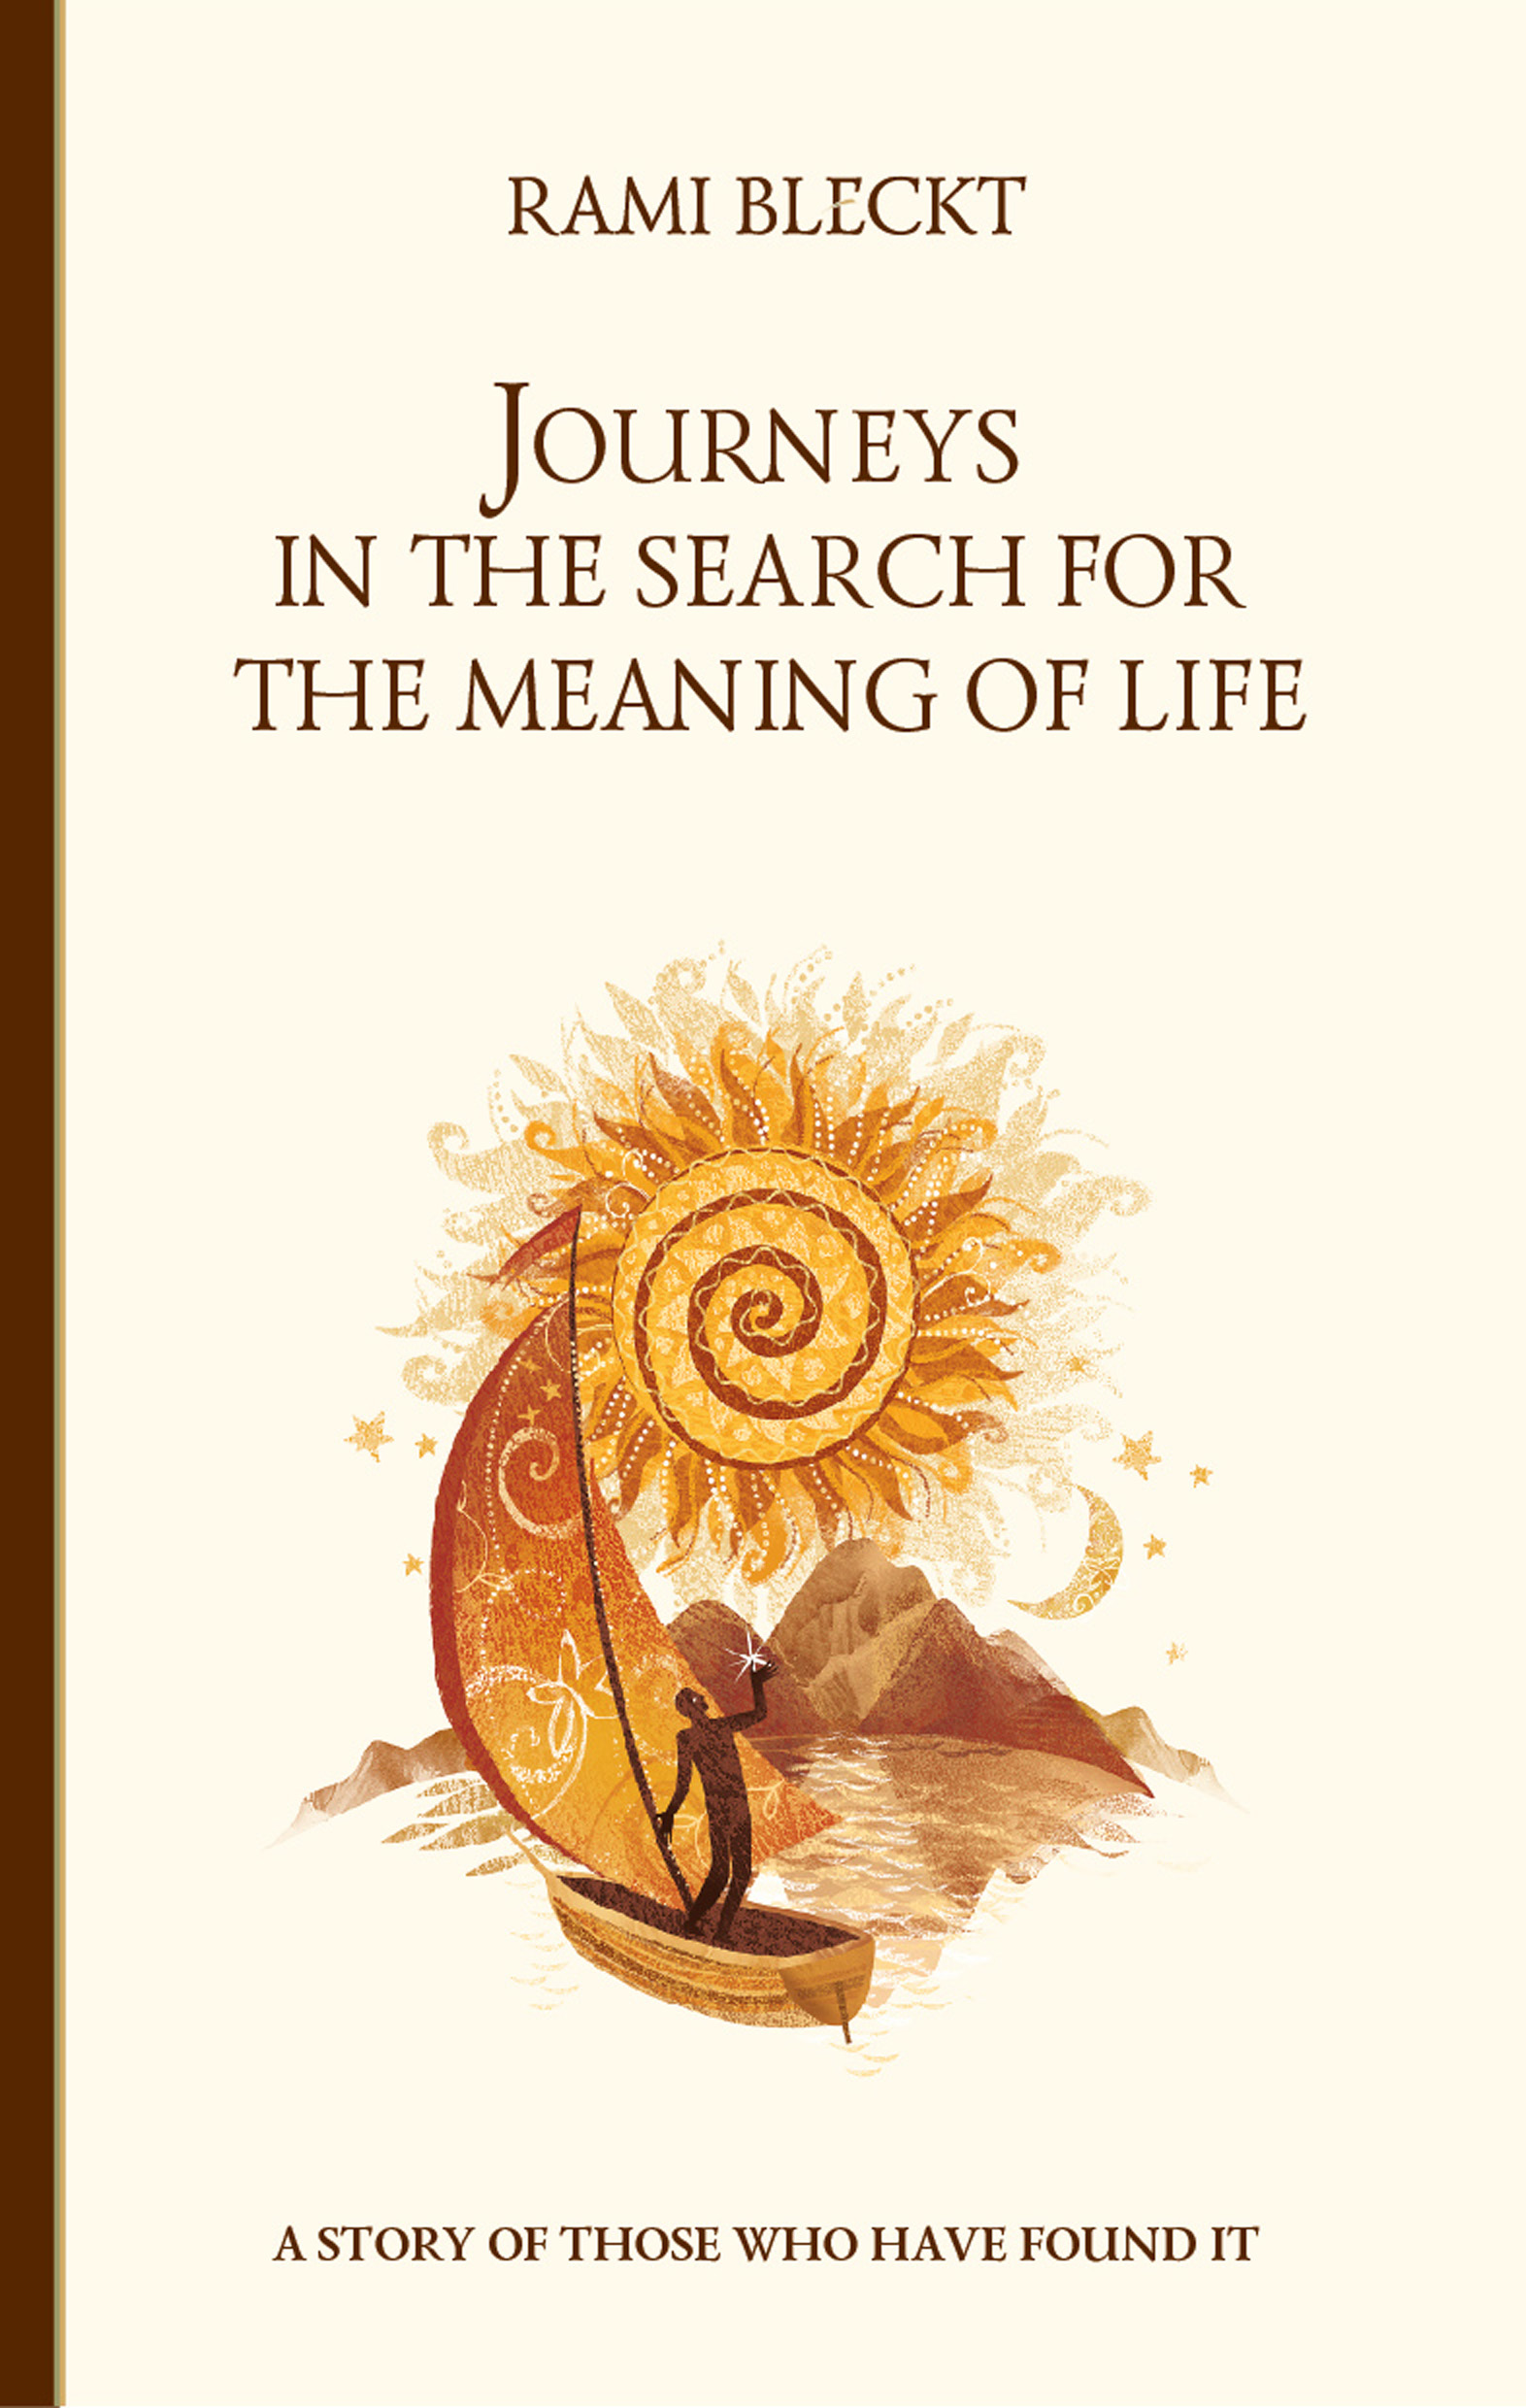 Rami Bleckt Journeys in the Search for the Meaning of Life. A story of those who have found it rebecca harding davis life in the iron mills or the korl woman